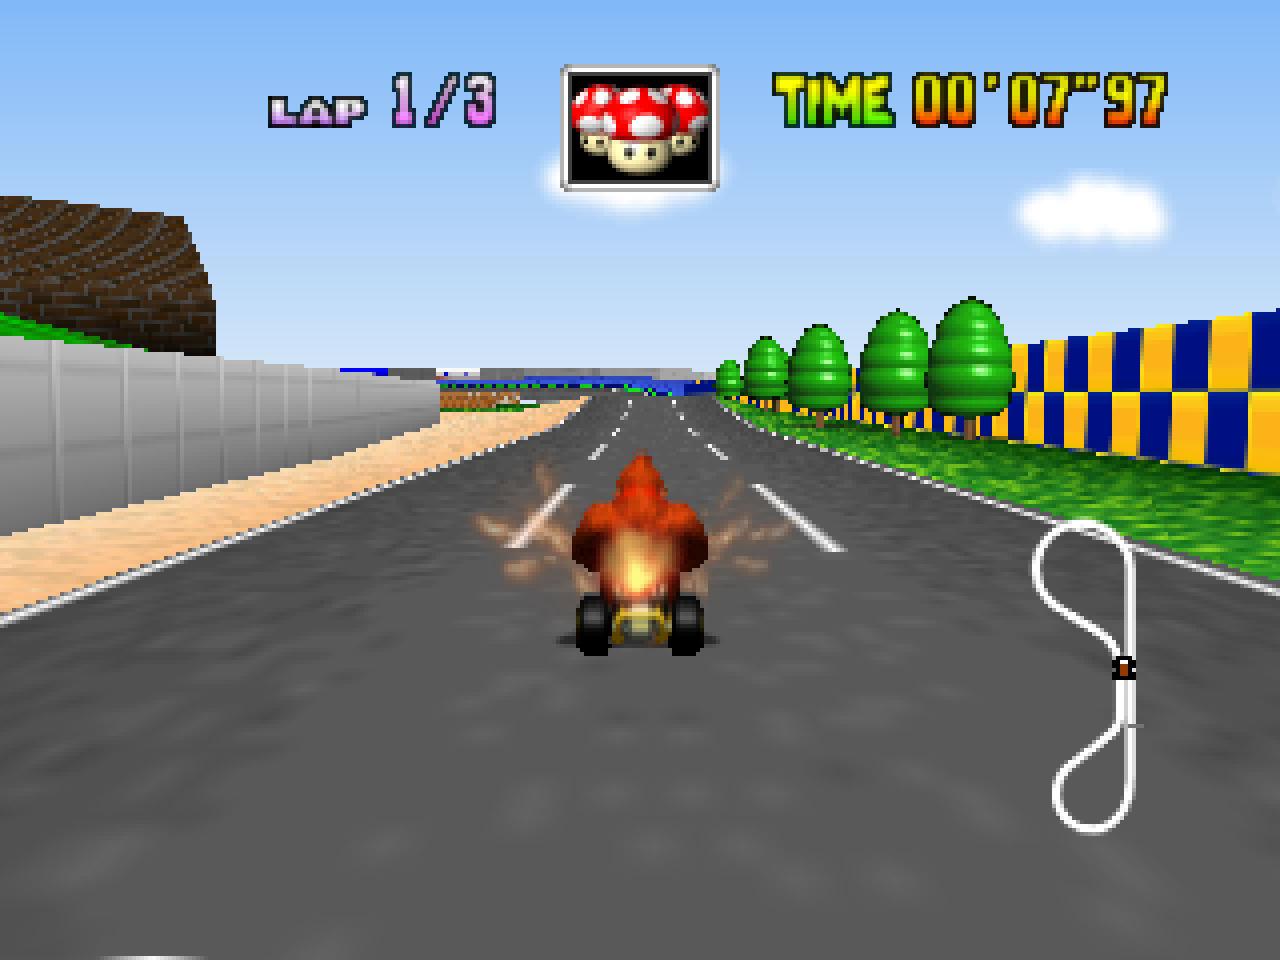 https://s3.eu-west-3.amazonaws.com/games.anthony-dessalles.com/Mario Kart 64 N64 2020 - Screenshots/Mario Kart 64-201118-215843.png